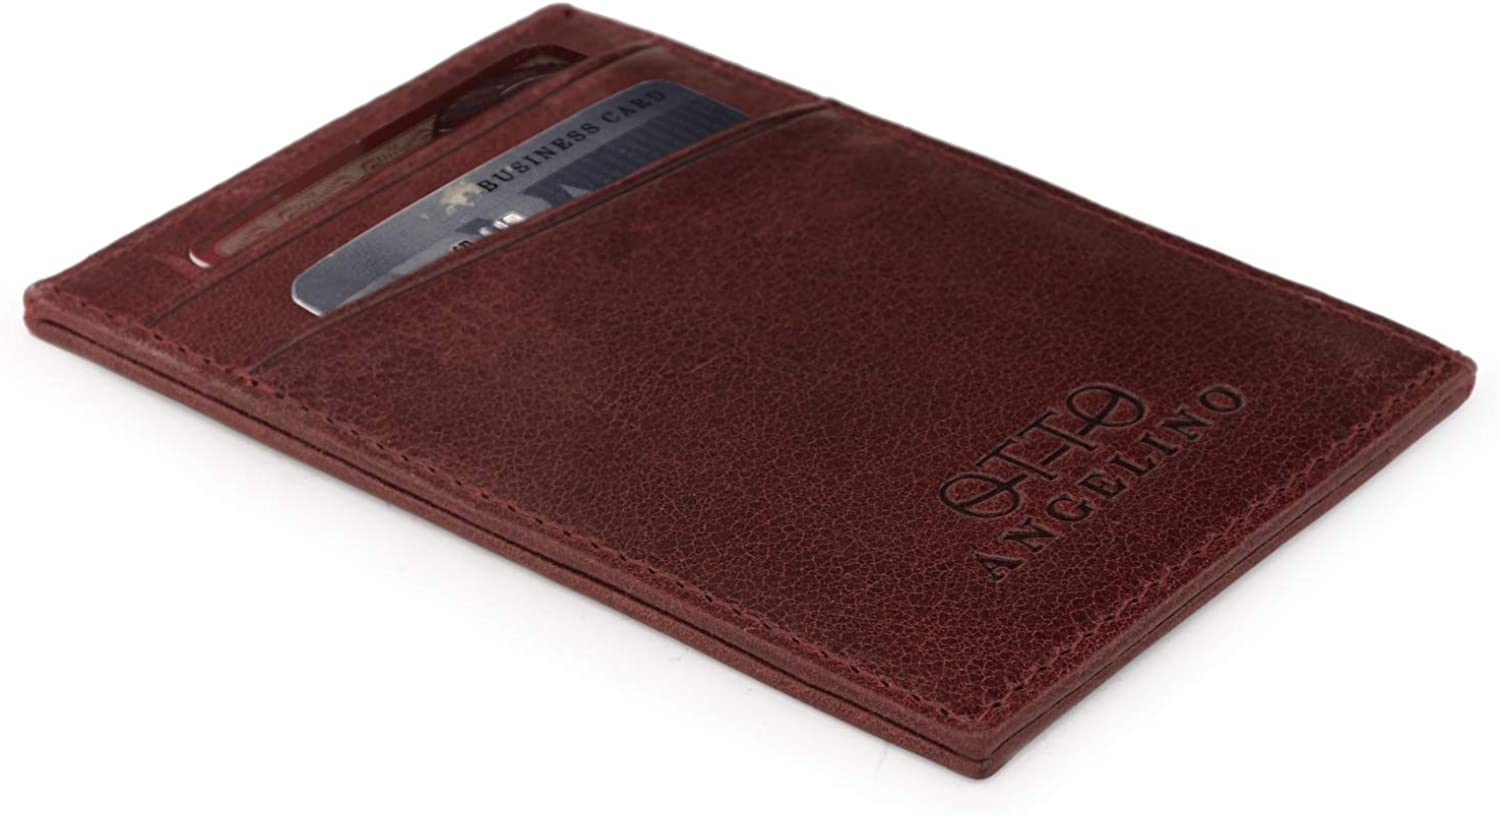 Drivers License Otto Angelino Genuine Leather Wallet Bank Cards Money Unisex